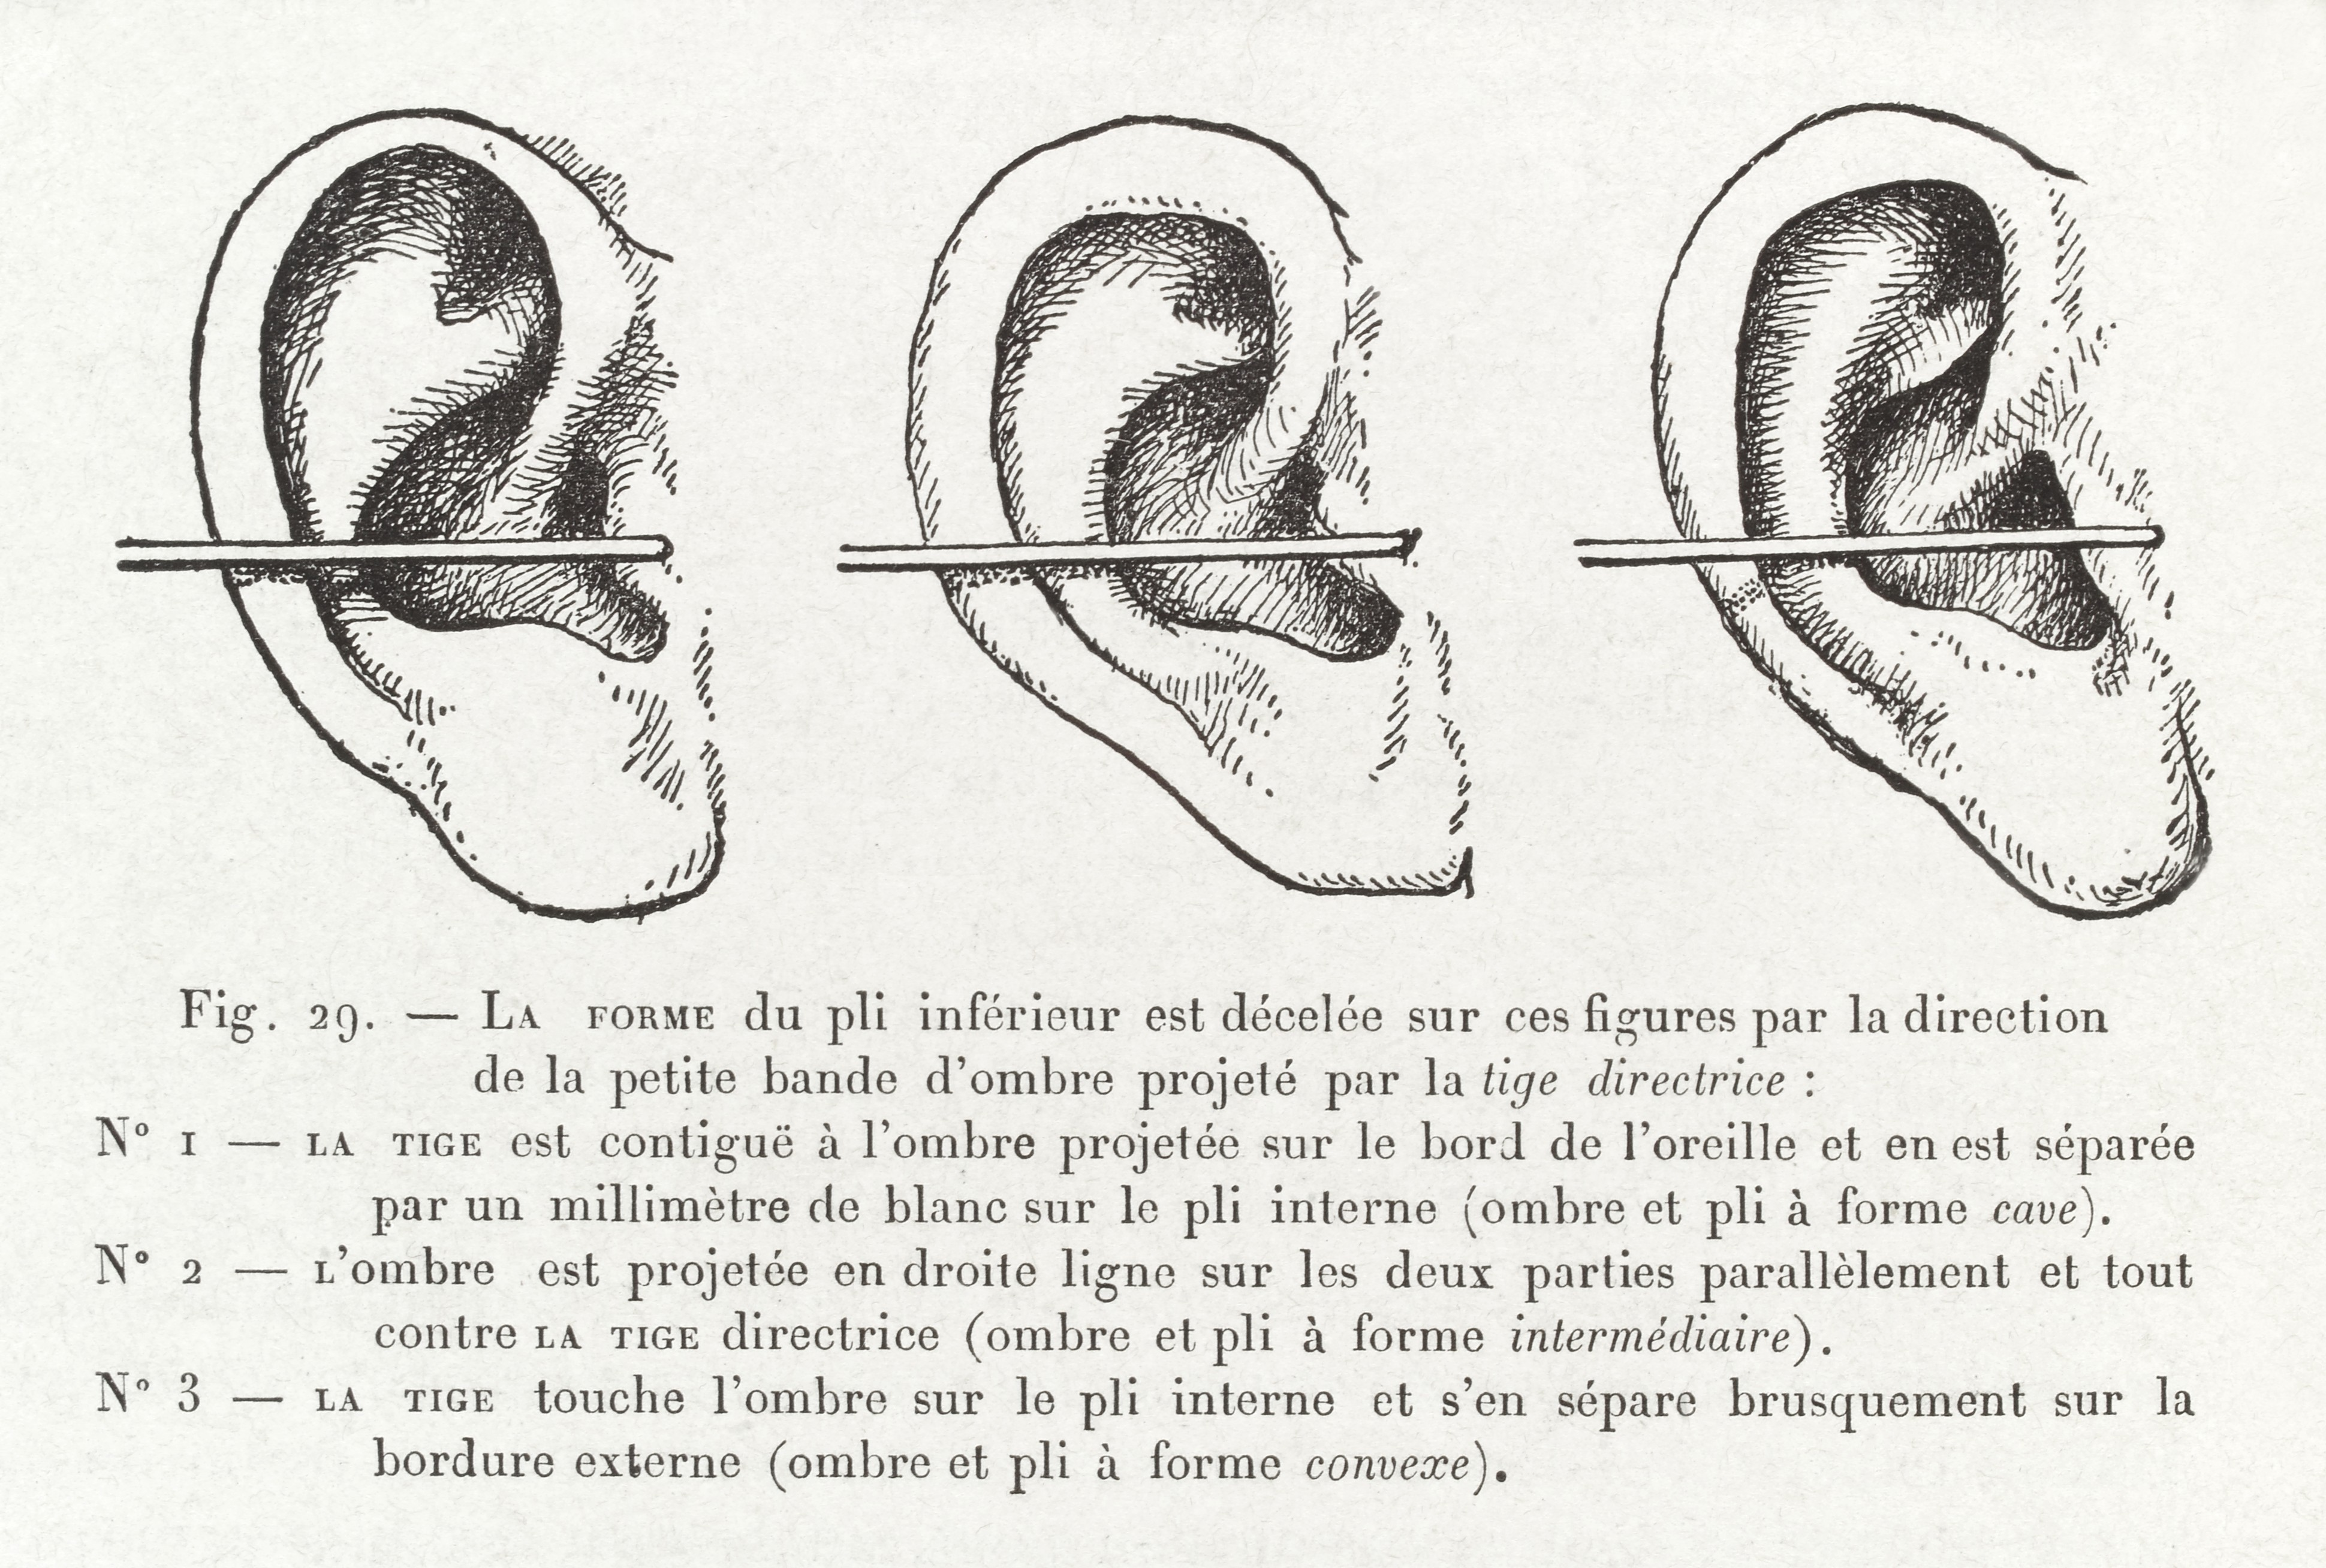 Measuring_the_ear_of_a_criminal_Wellcome_L0035102.jpg_3880x2616